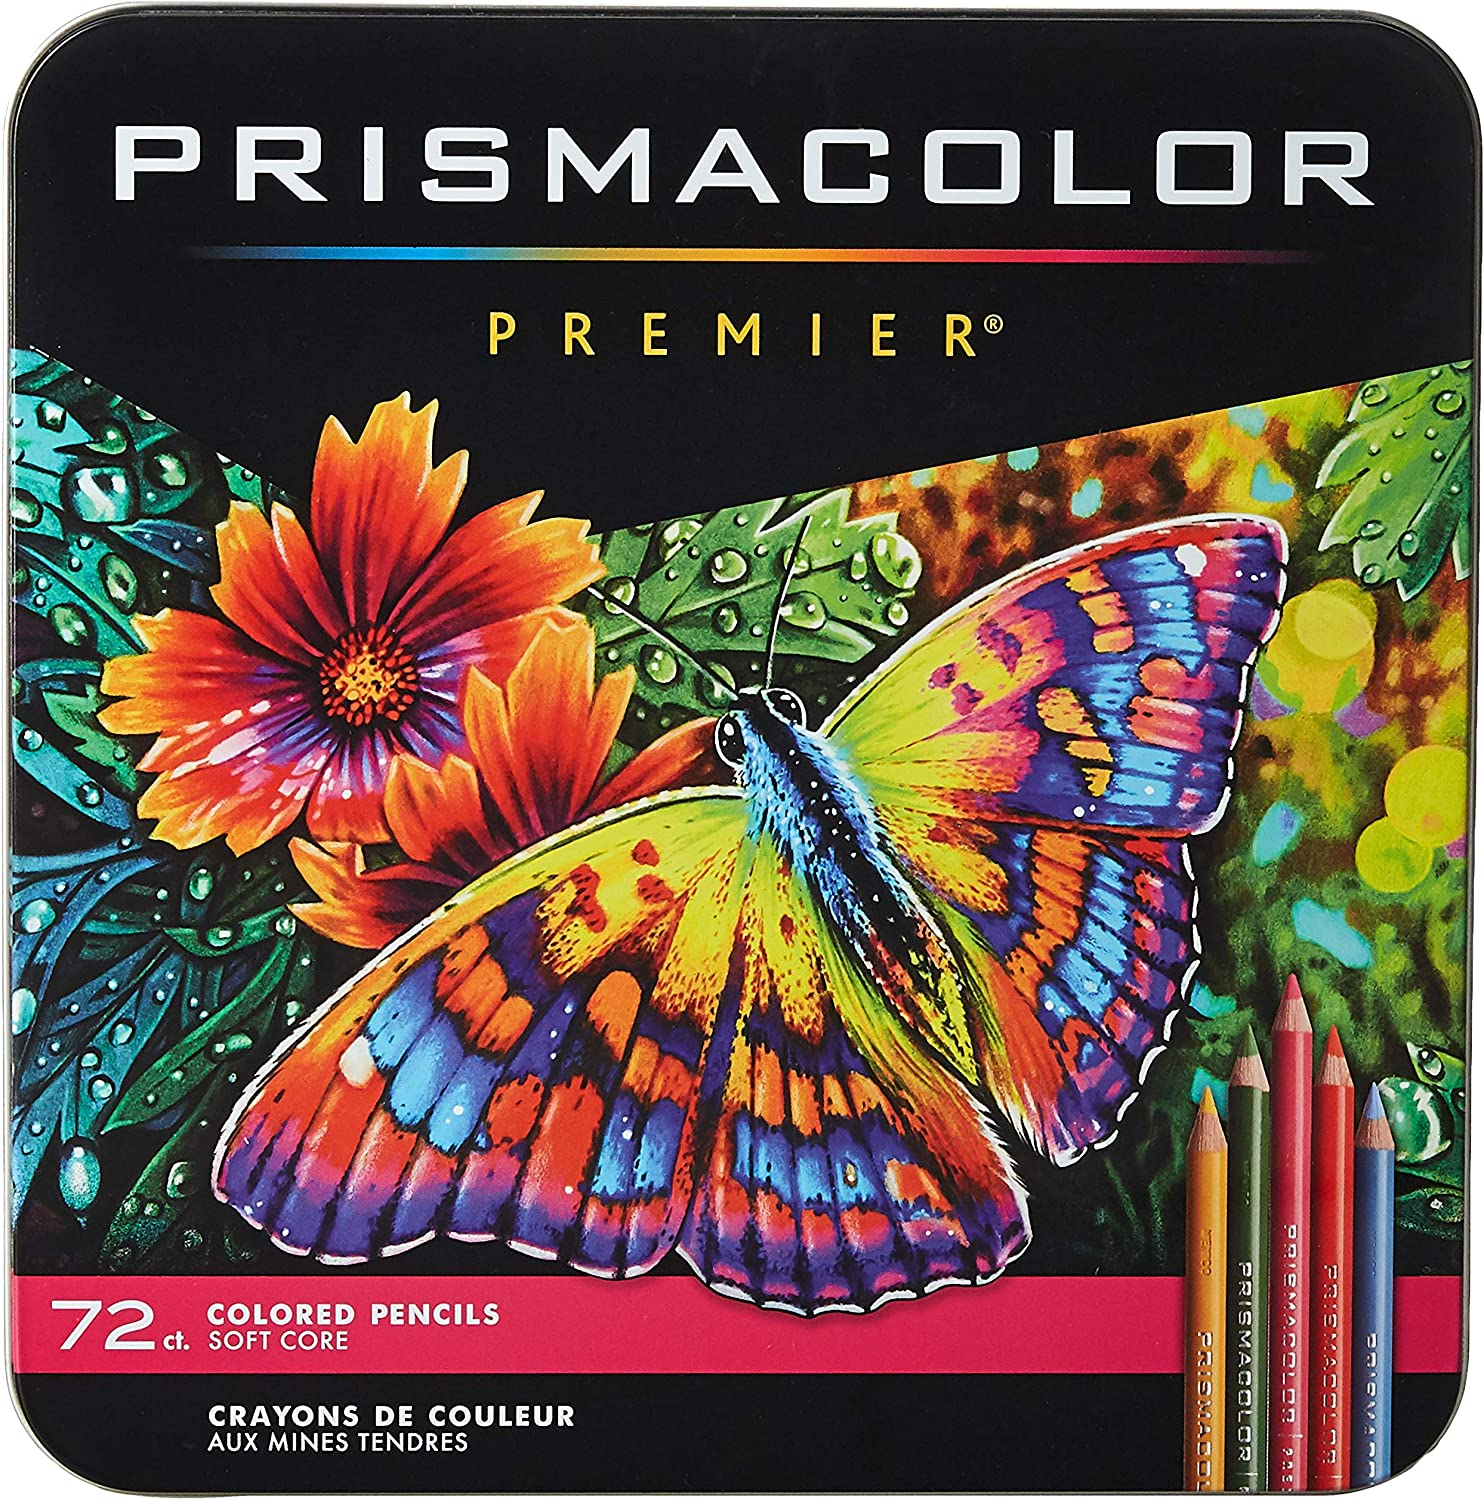 Premier Colored Pencils Art Supplies Sketching Animer and price revision A for Drawing Sale SALE% OFF